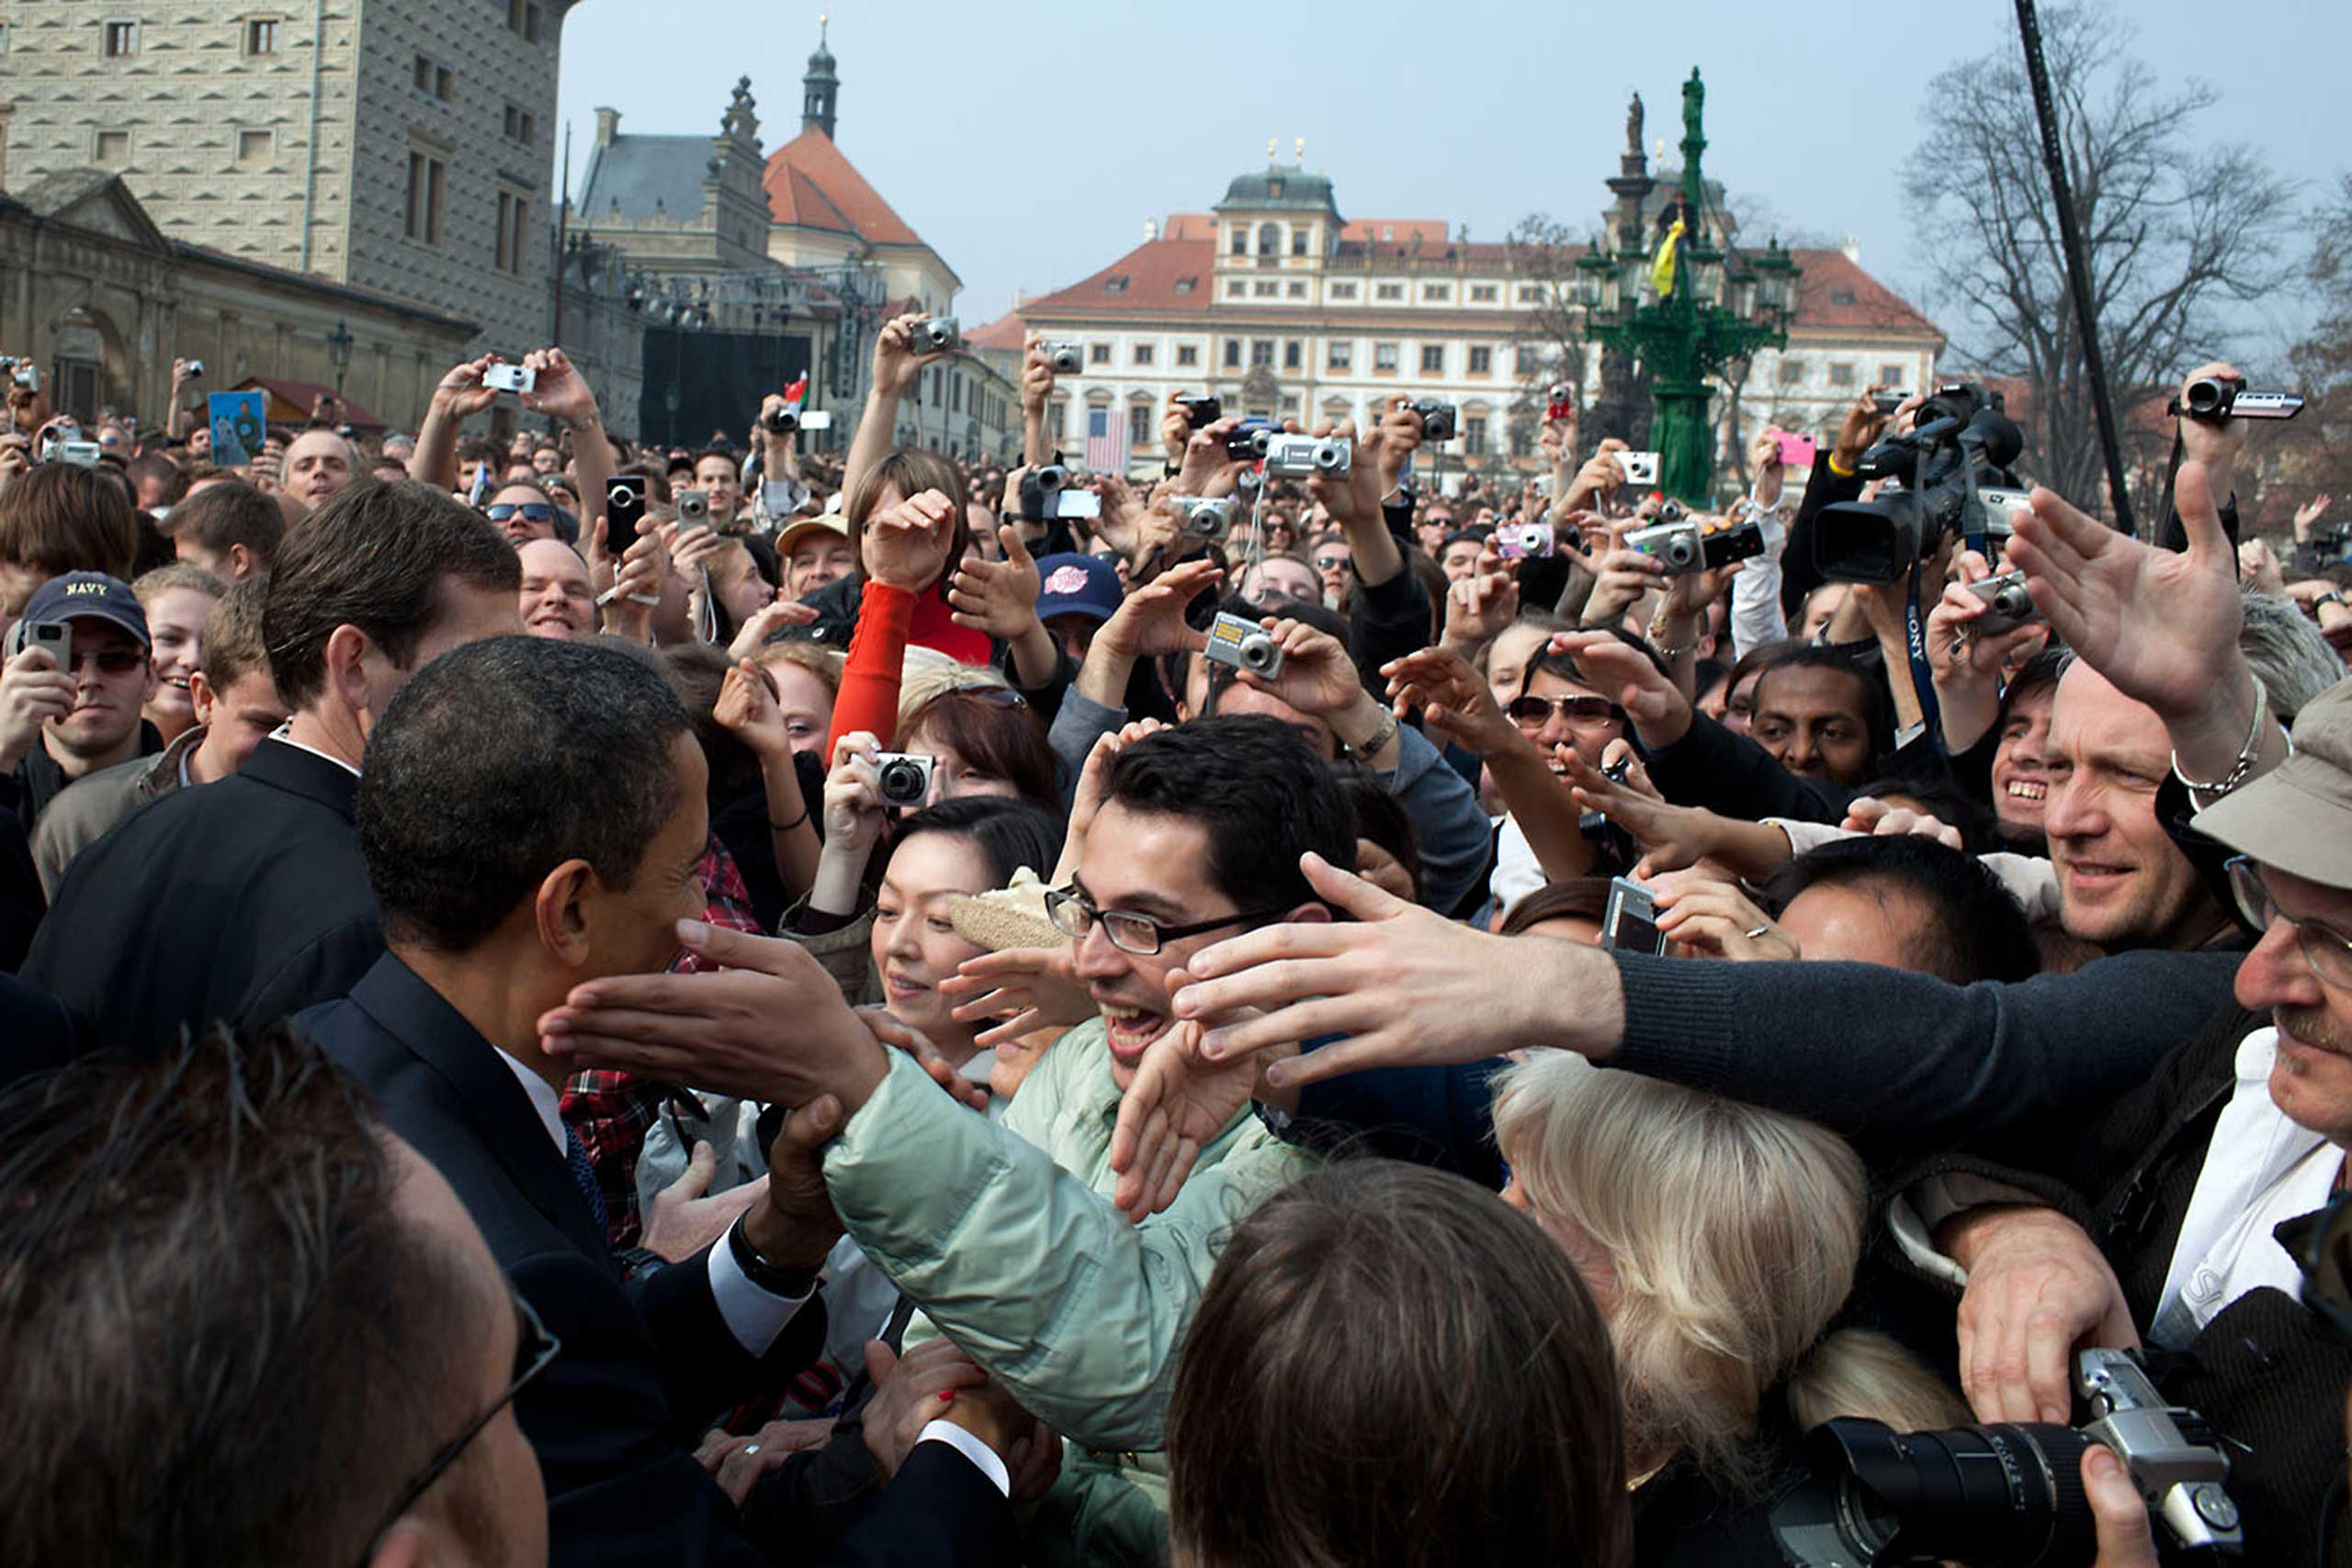 President Barack Obama is greeted by a large crowd following his Prague speech in Hradcany Square, April 5, 2009.